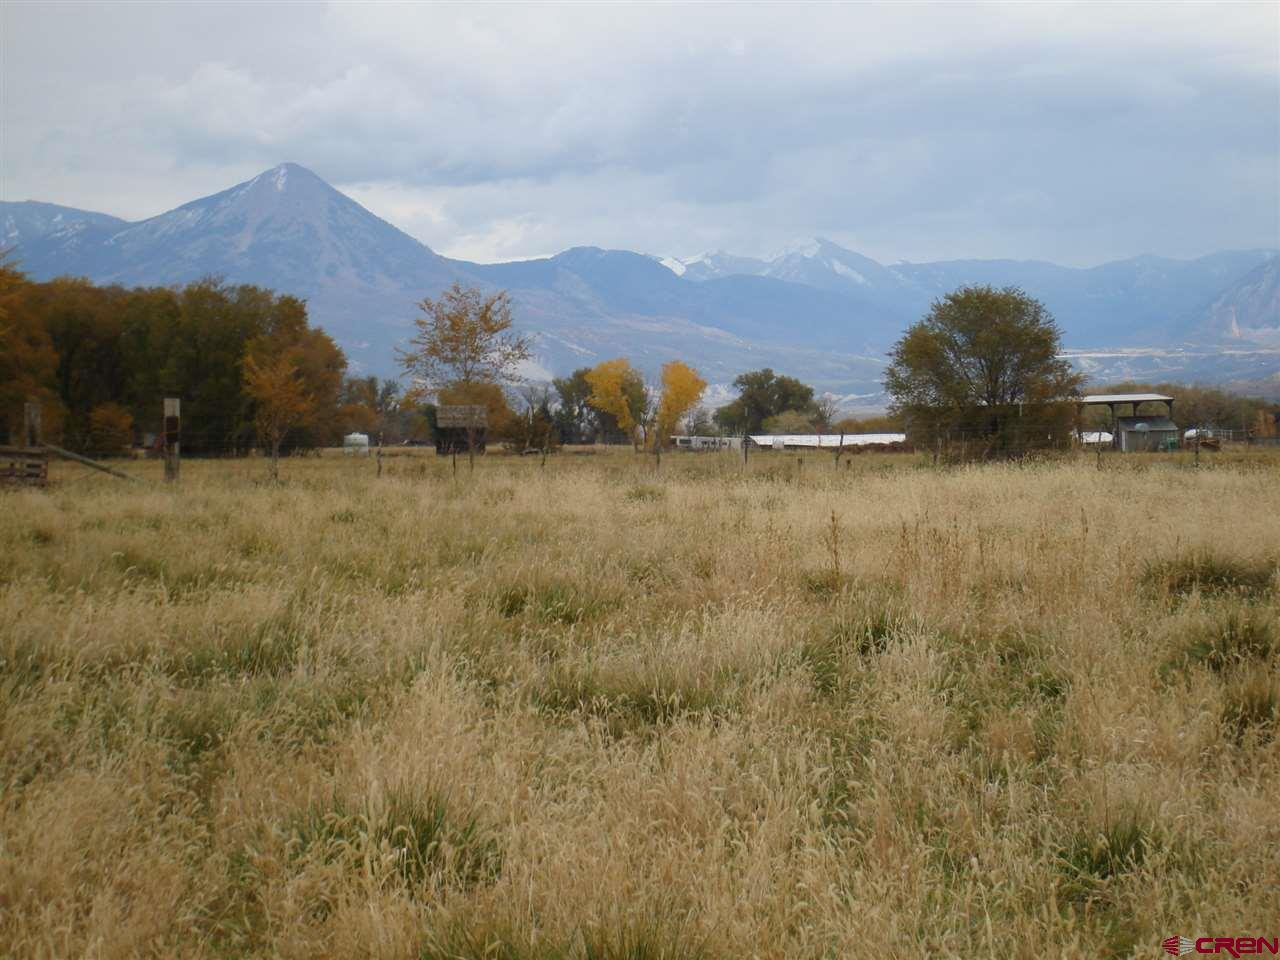 Pristine lot with plenty of irrigation water, sweeping views of West Elks. Domestic water tap is installed and paid for!! Nice, level lot ideal for livestock grazing. Very few rocks therefore easy on farm equipment. Build your dream home or farm with irrigation pipe and included.  Fully fenced with gated entry and paved road to the property. Just a few minutes from Hotchkiss with convenient shopping and services. This property is and active agricultural property that lends itself to many uses. Easy access to Highway 92 with lovely surrounding properties.